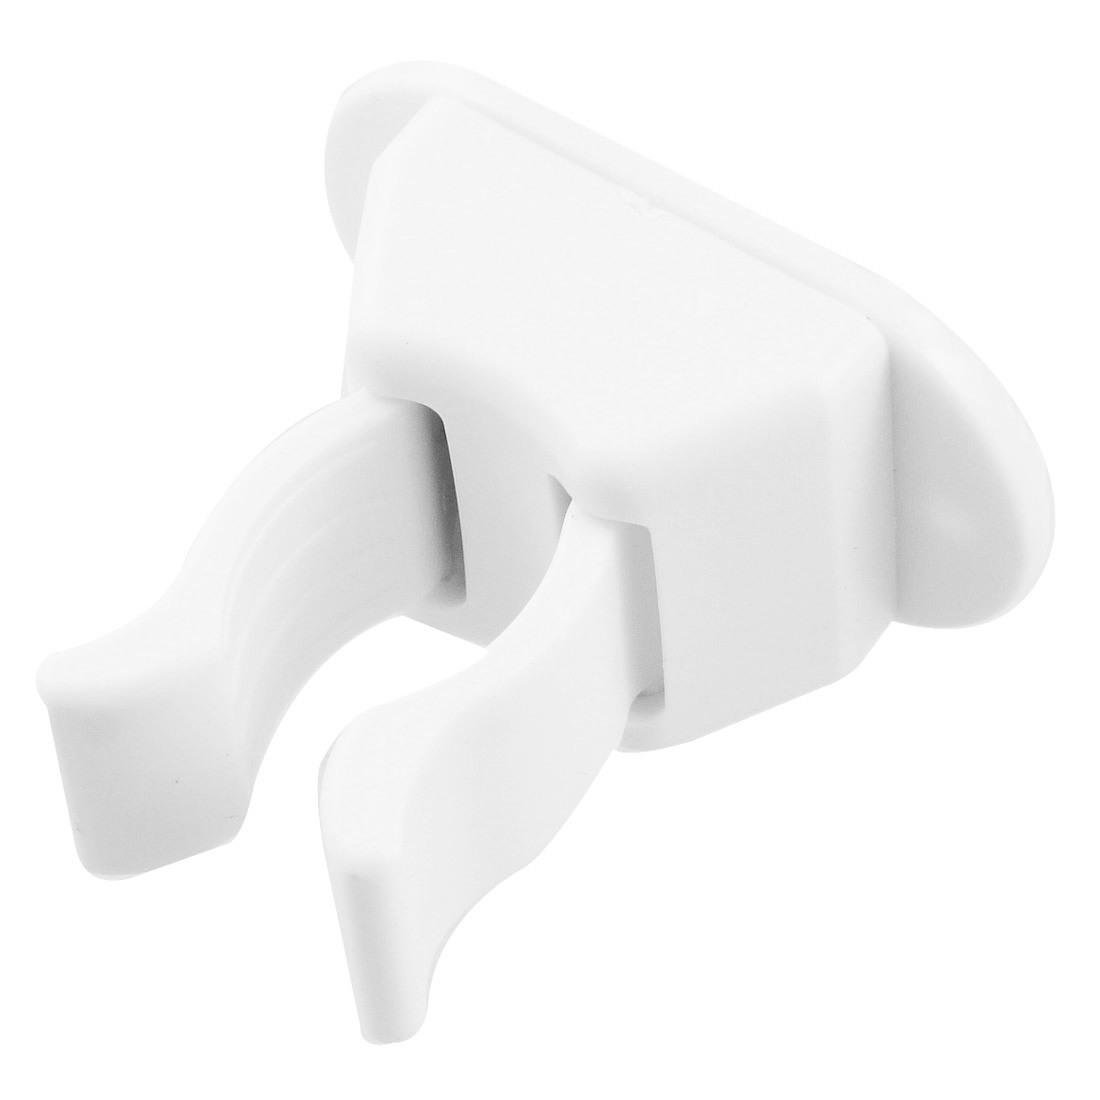 Bathroom Adhesive Broom Mop Handing Wall Clip Hook White